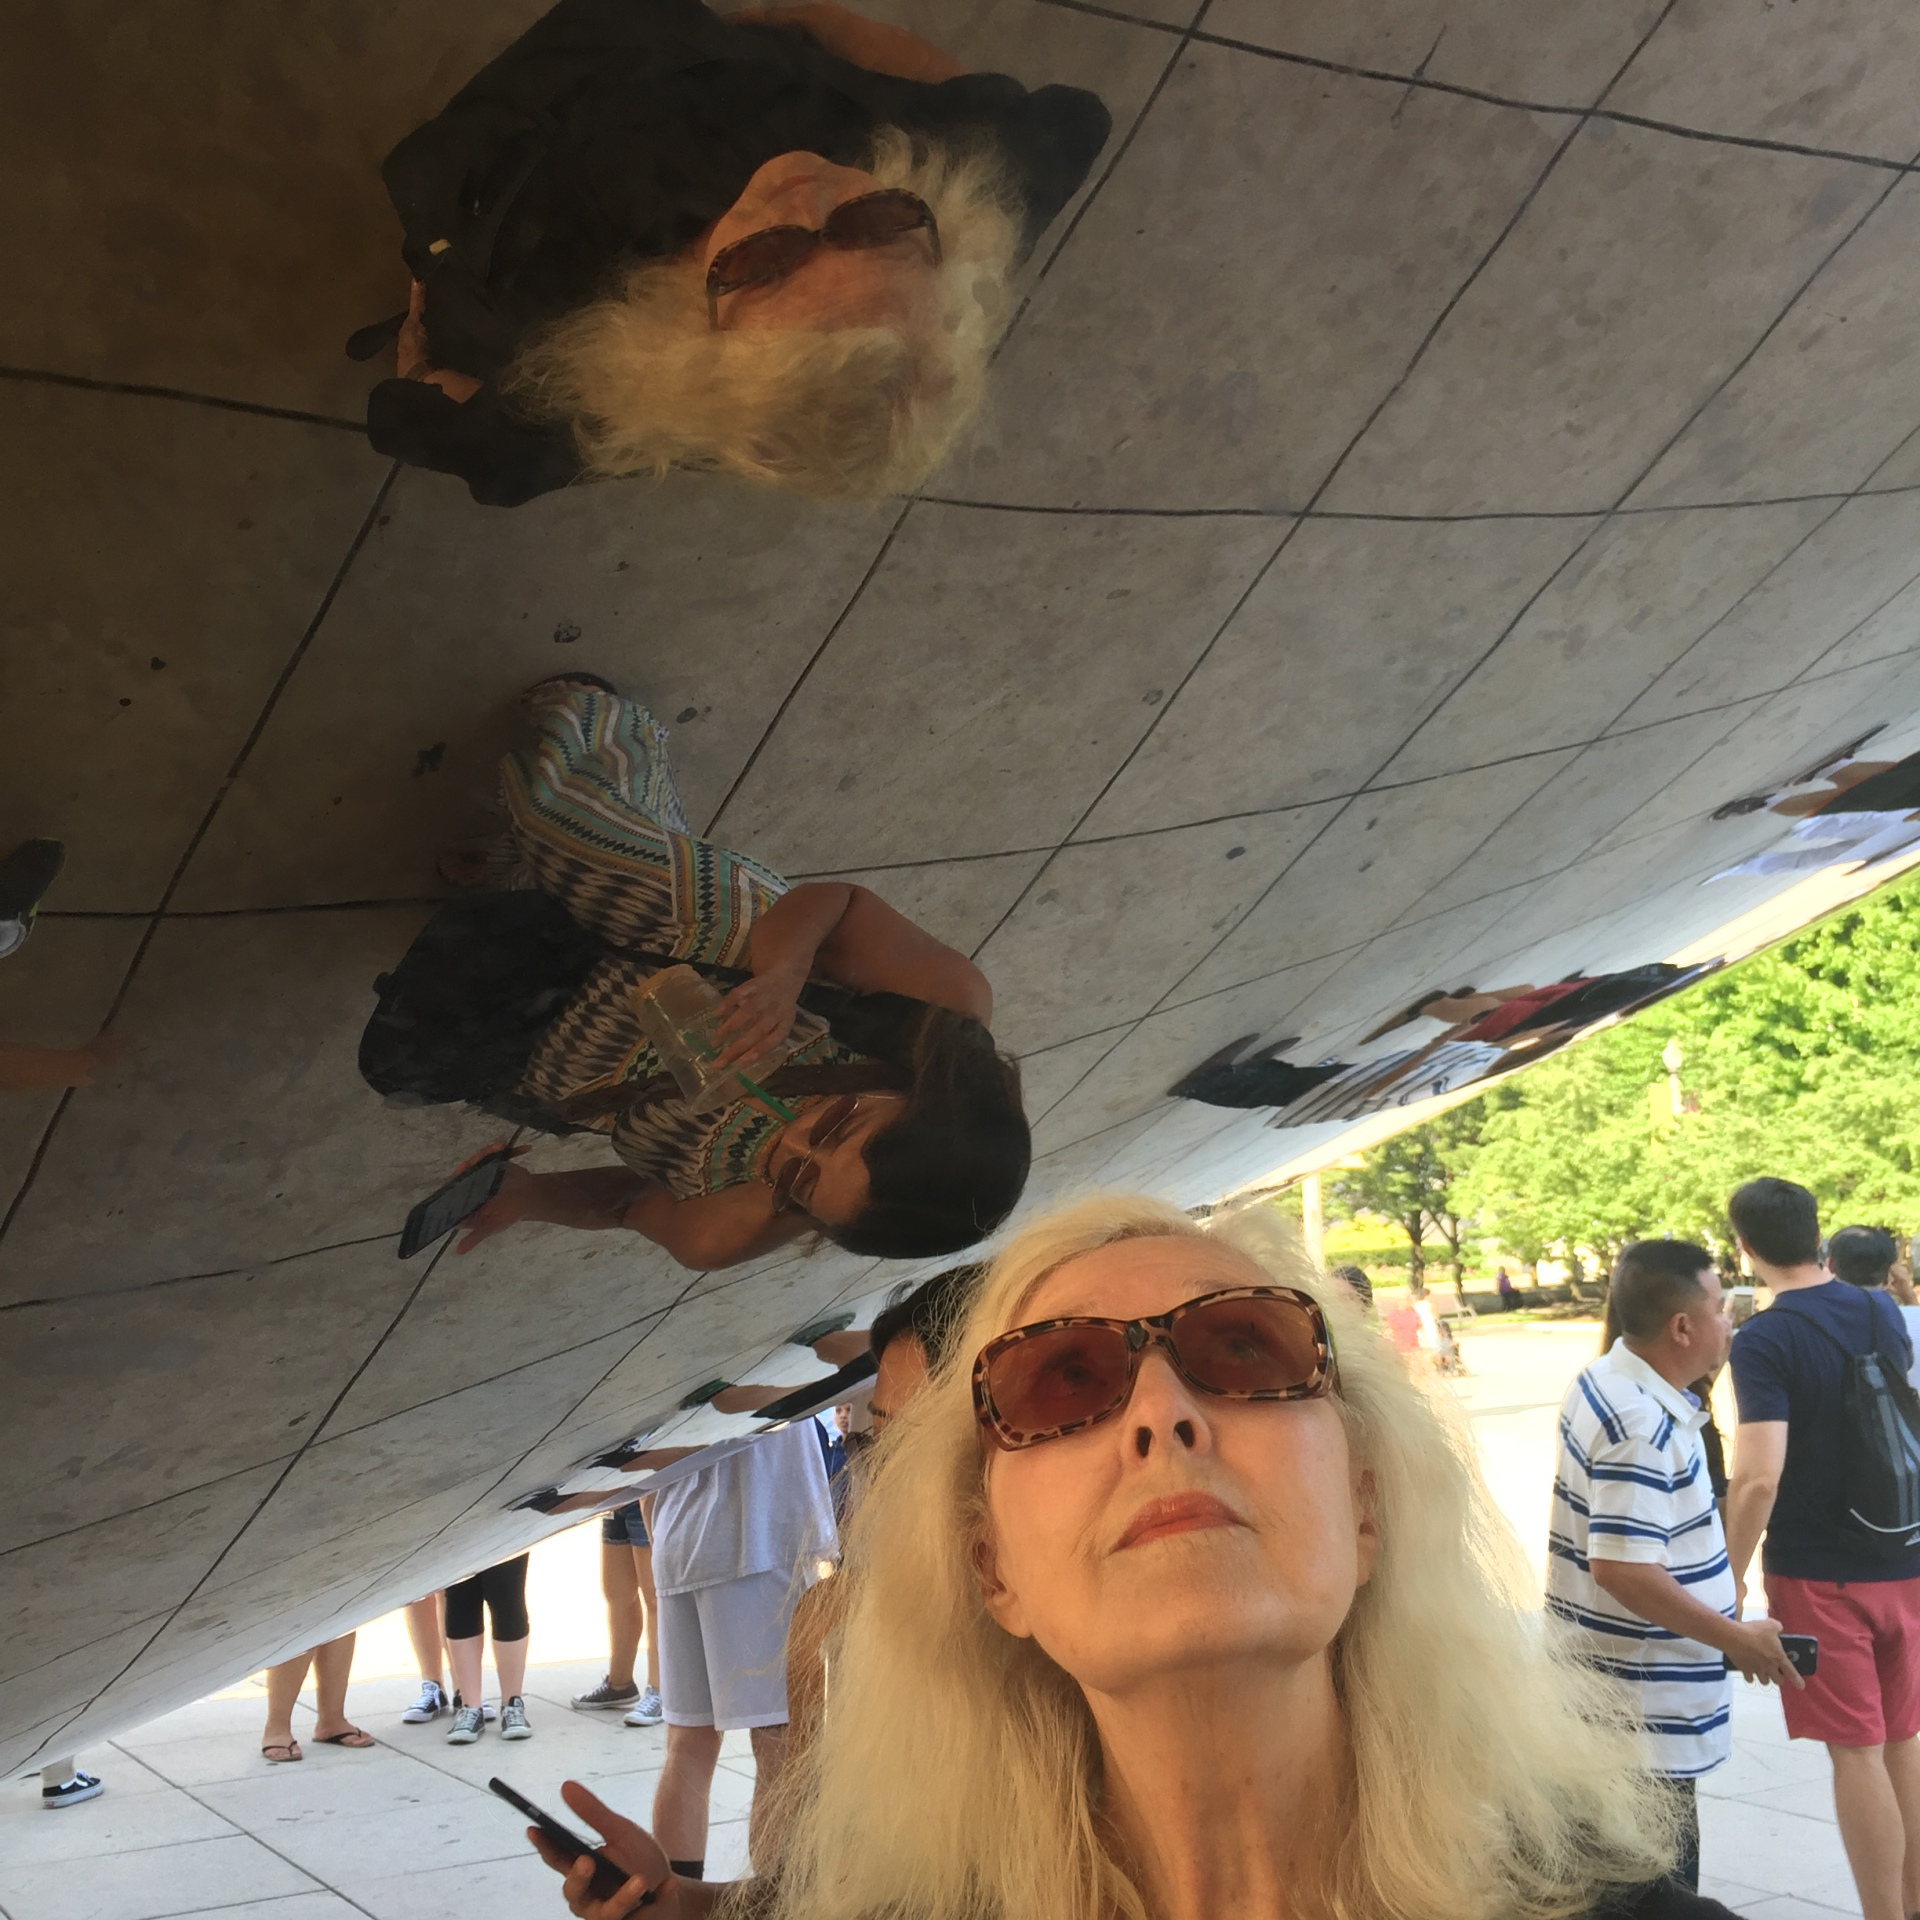 Sandra at the Bean in Chicago